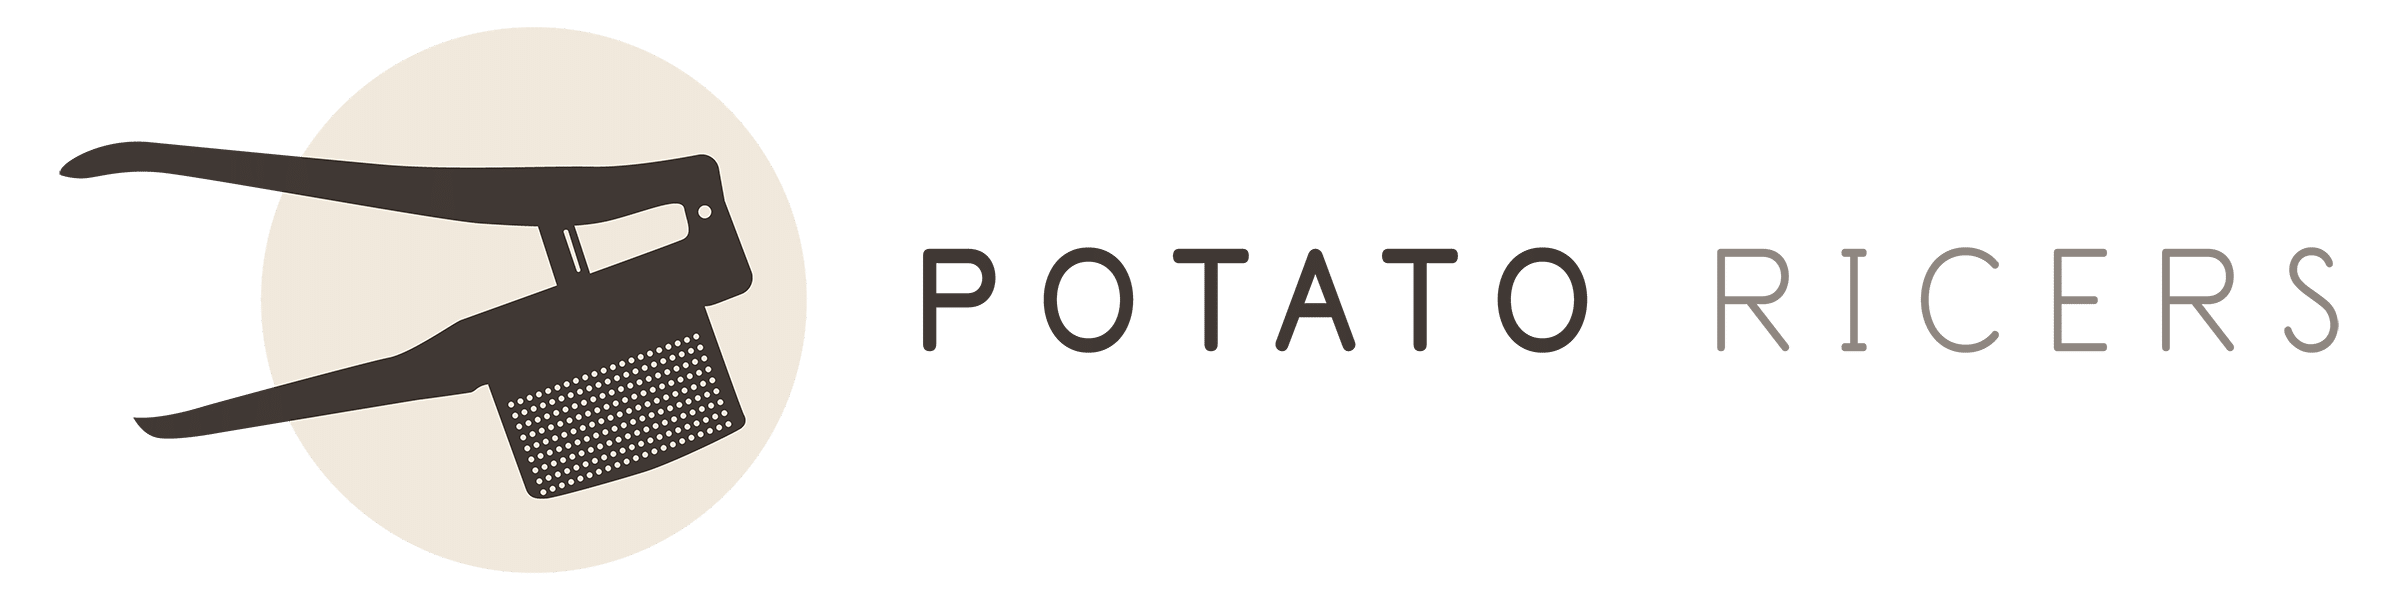 PotatoRicers.com